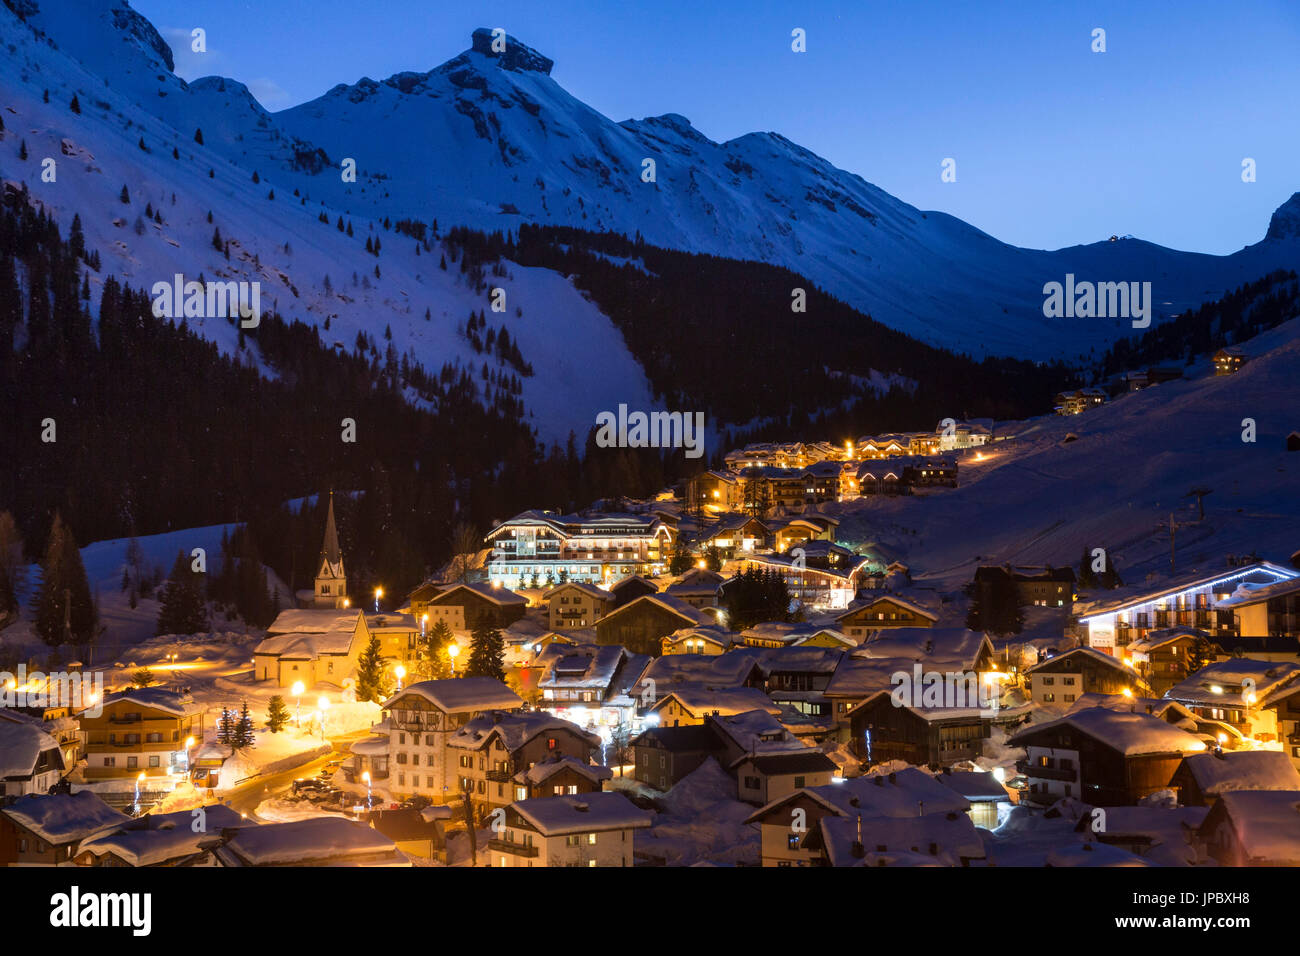 Lights of dusk on the alpine village of Arabba framed by snowy peaks Dolomites Belluno province Veneto Italy Europe - Stock Image